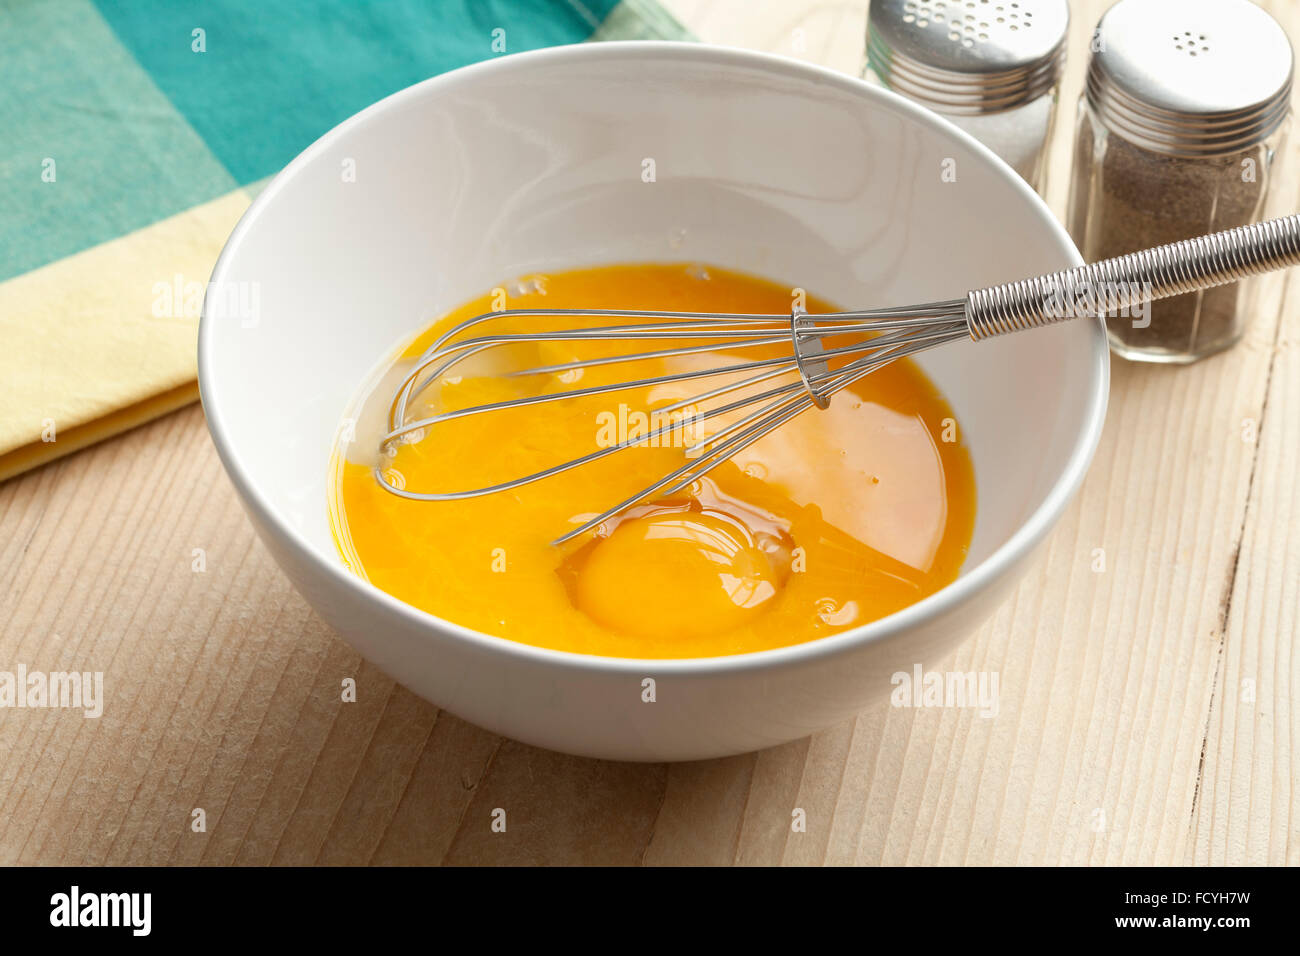 Beaten egg yolks in a bowl with whisk - Stock Image